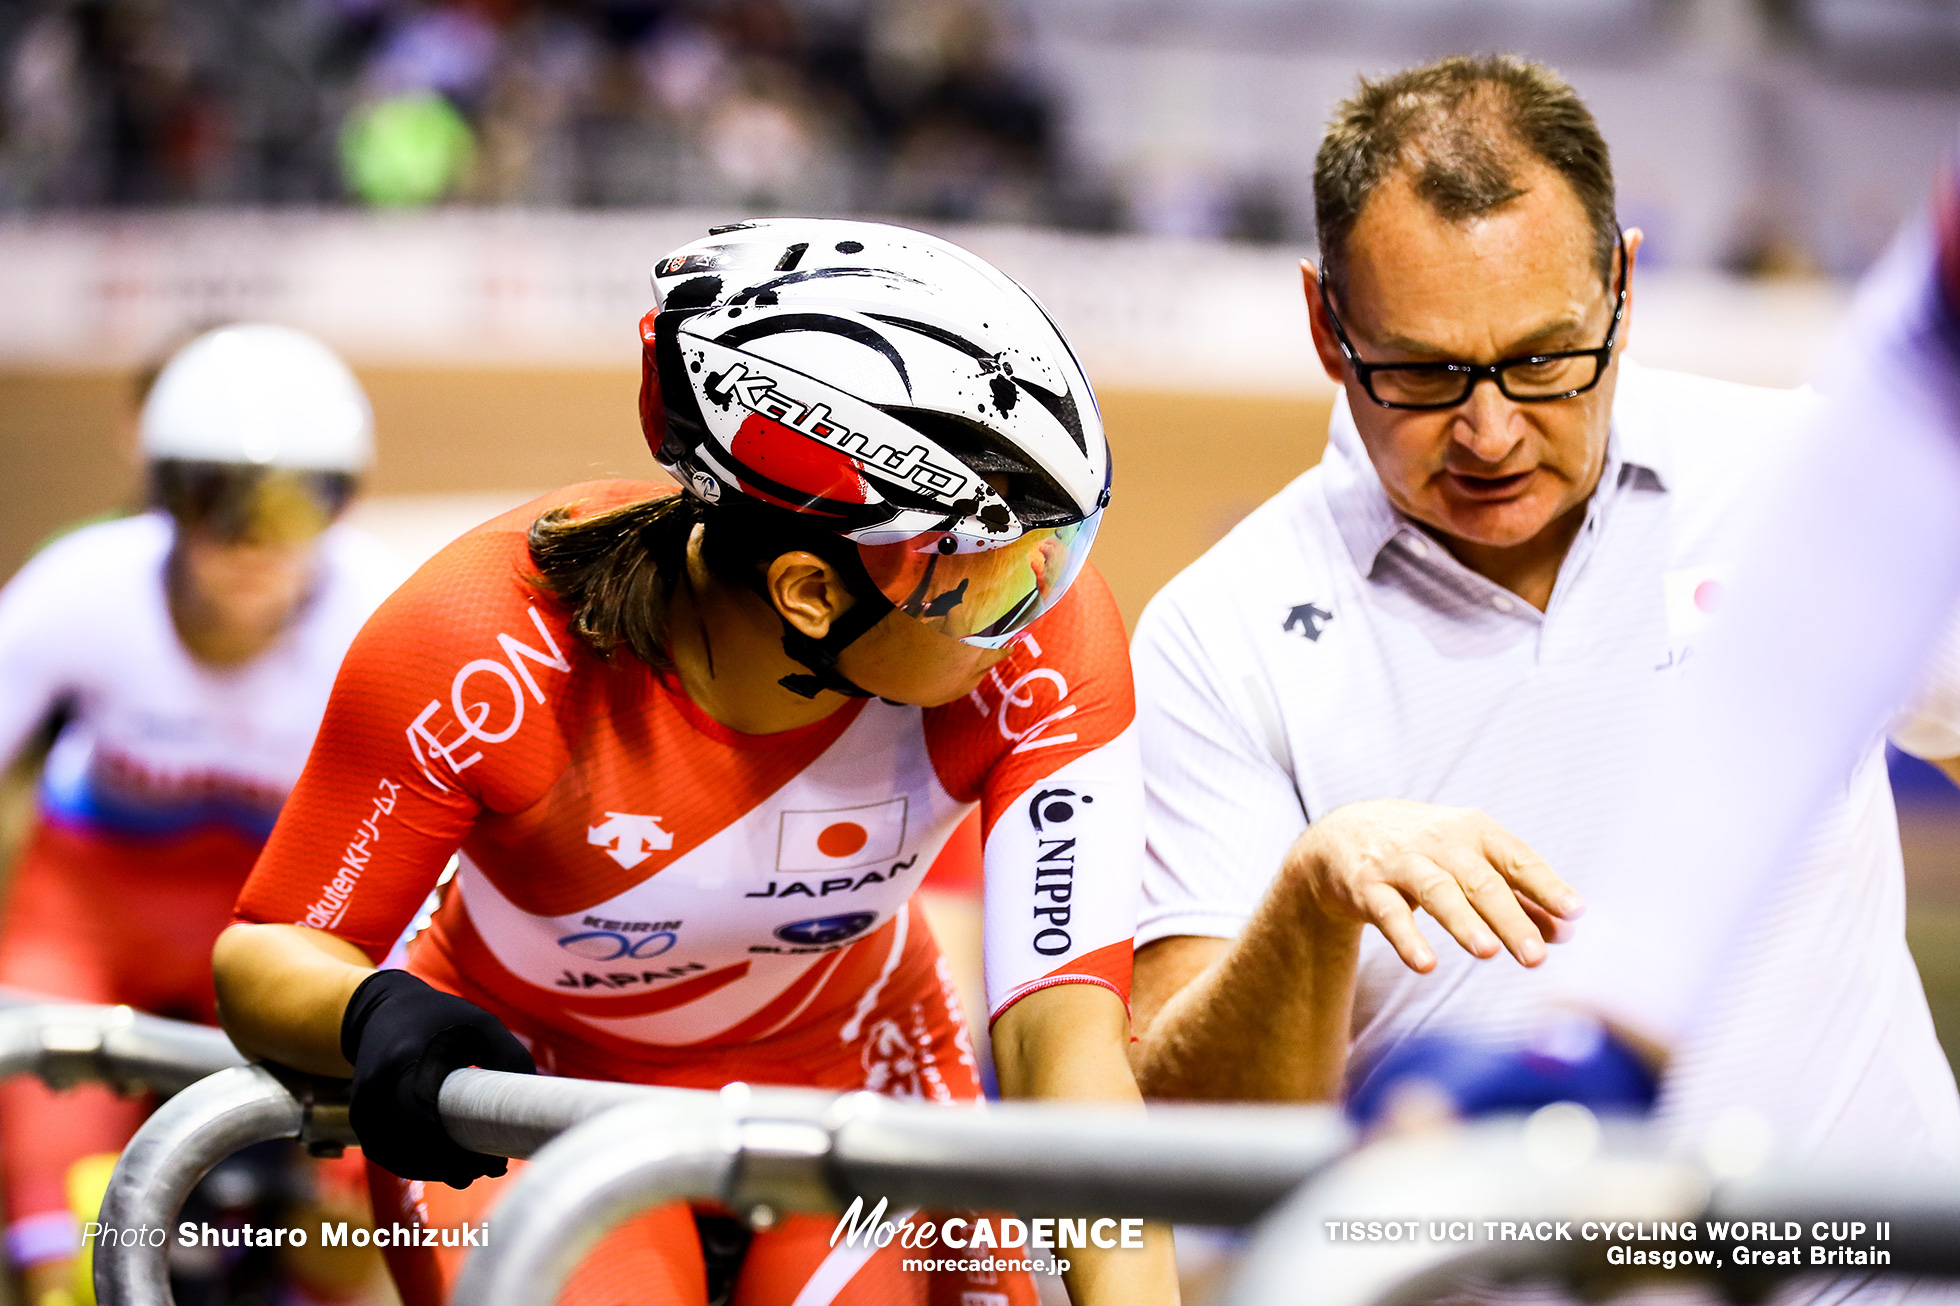 Women's Madison / TISSOT UCI TRACK CYCLING WORLD CUP II, Glasgow, Great Britain 梶原悠未